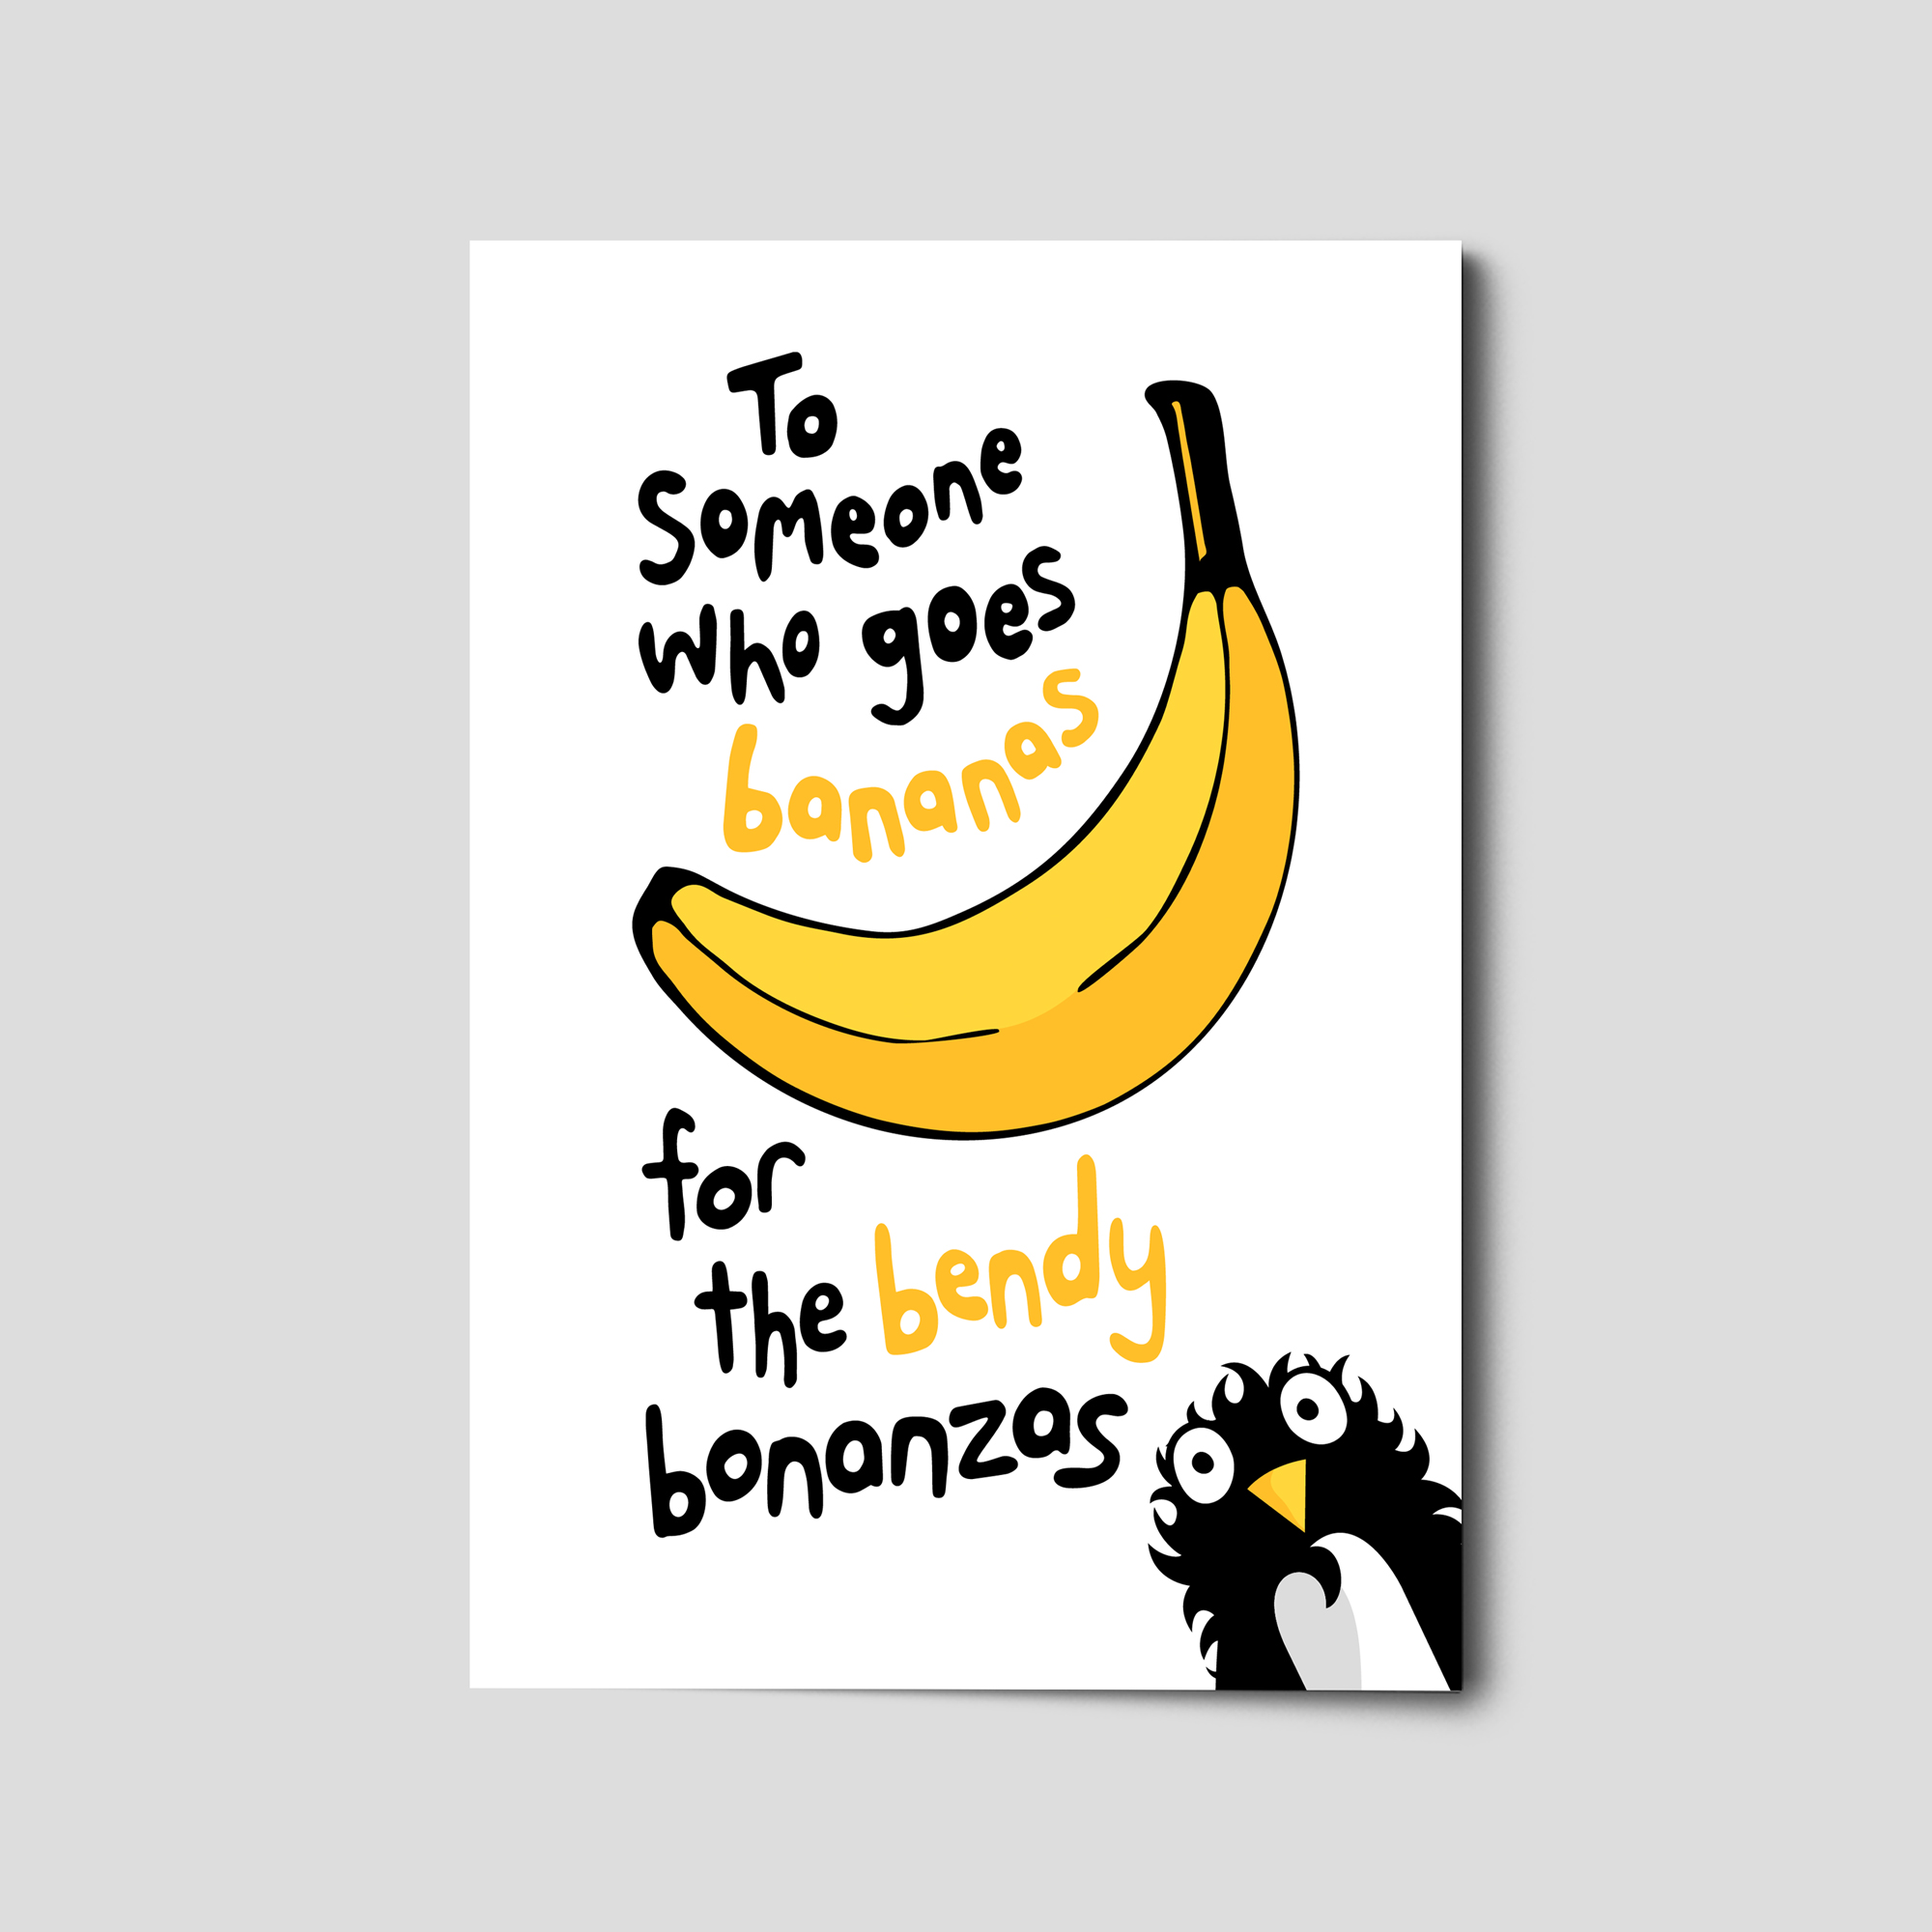 Hidden Primate® 008 To Someone Who Goes Bananas for the Bendy Bonanzas